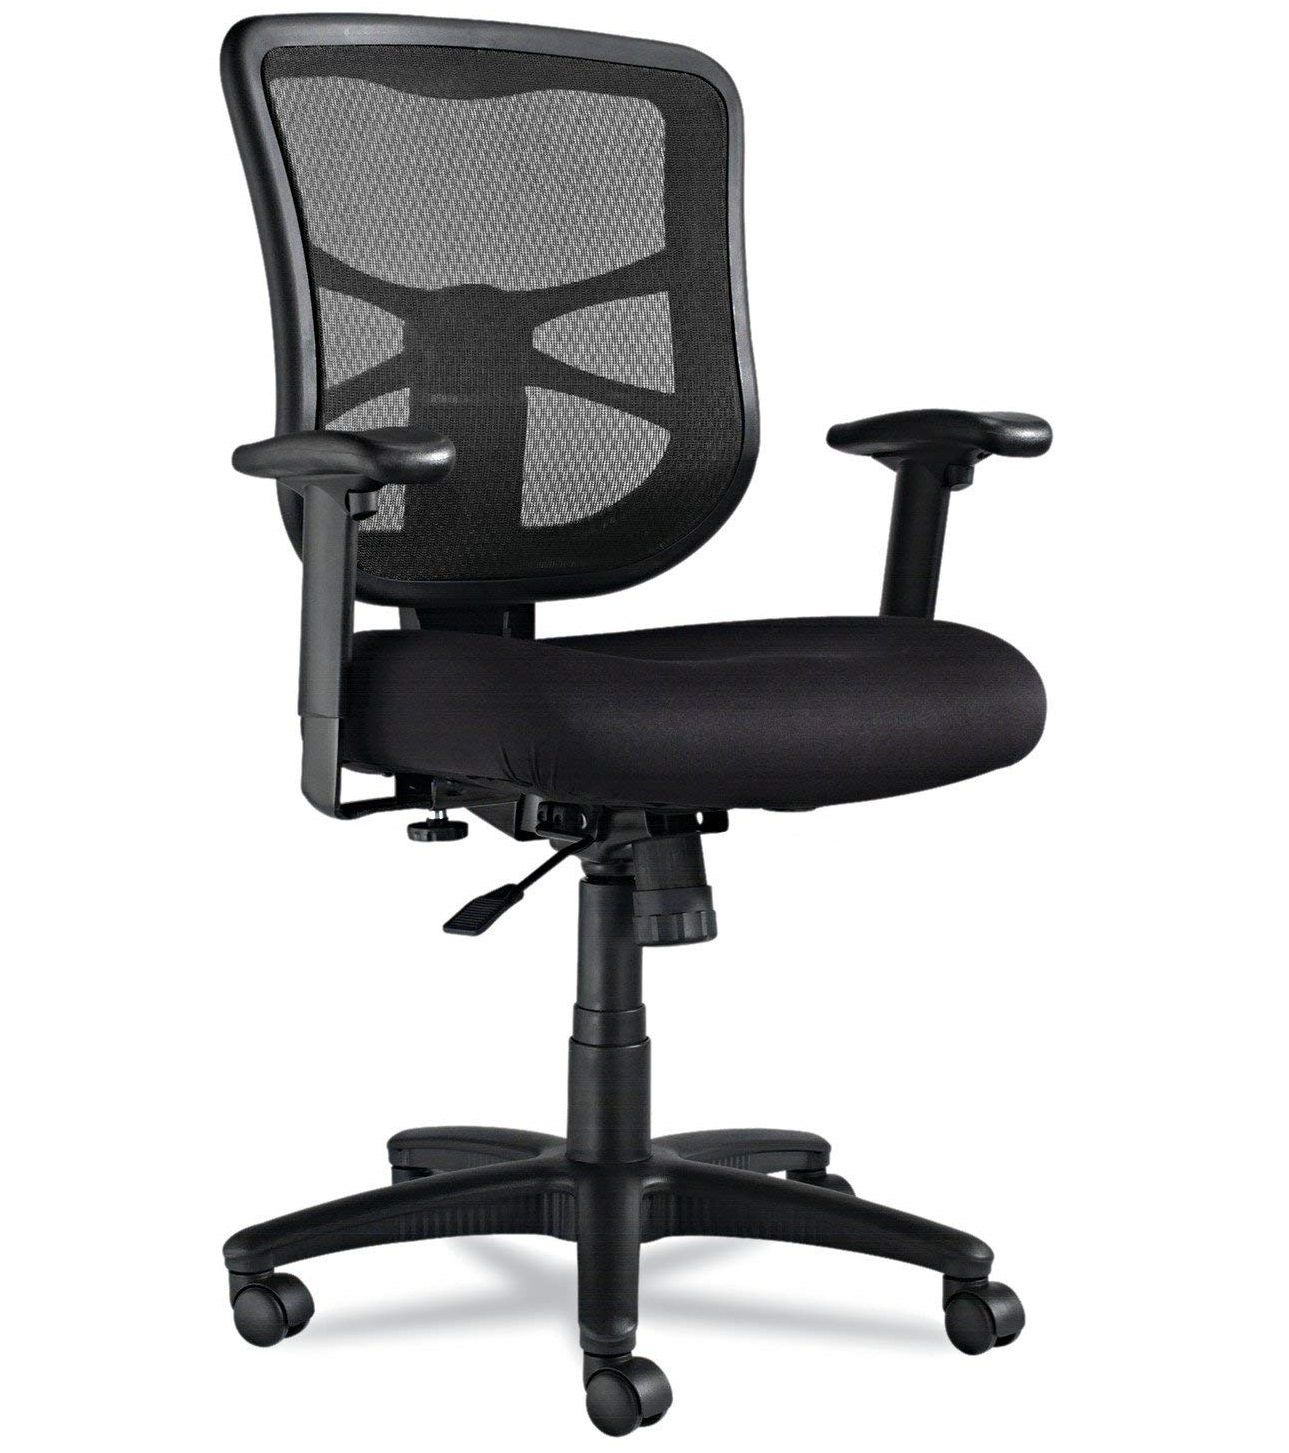 Pin by Victor Tran on Luxury Furniture Best office chair